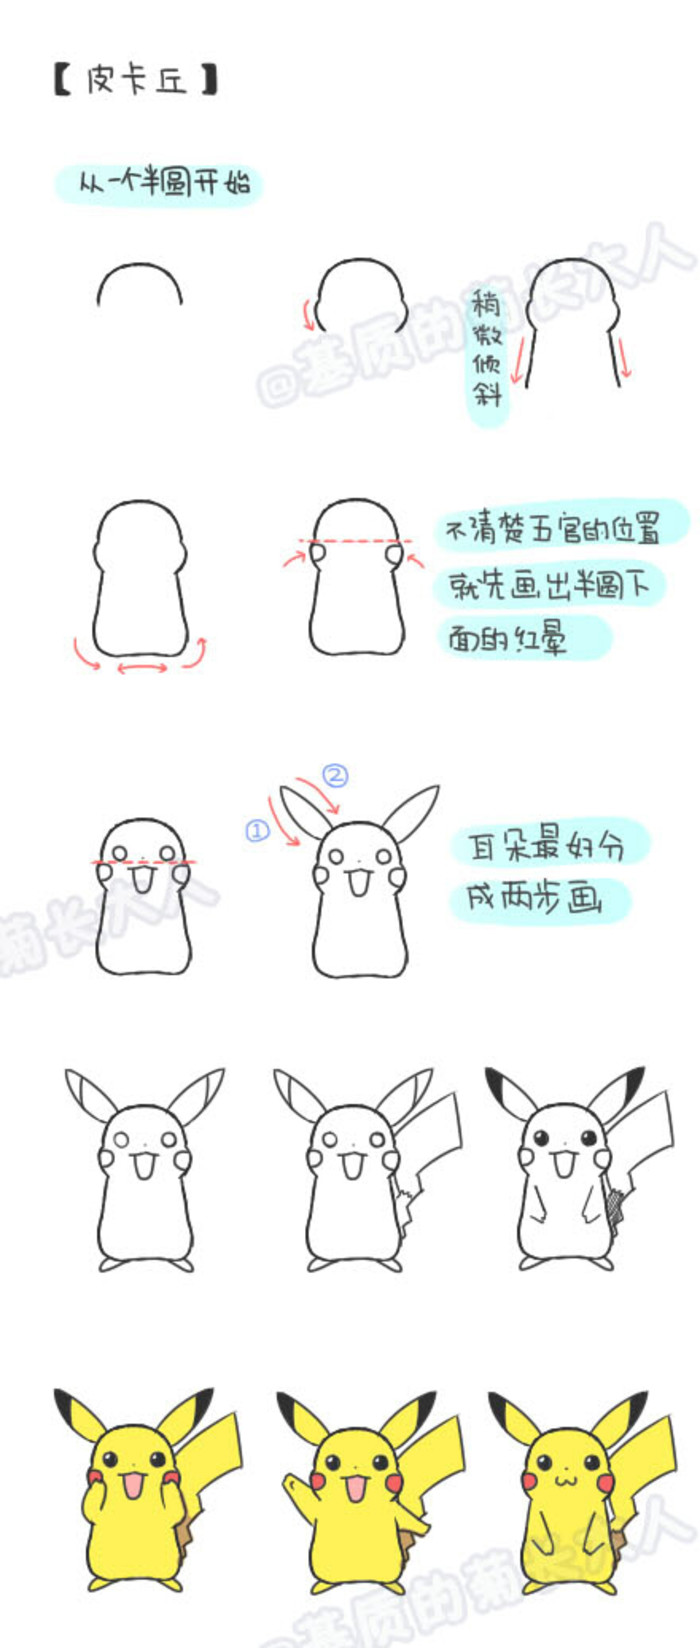 700x1648 How To Draw Pikachu. Ju @ Matrix Grew From People How To Paint